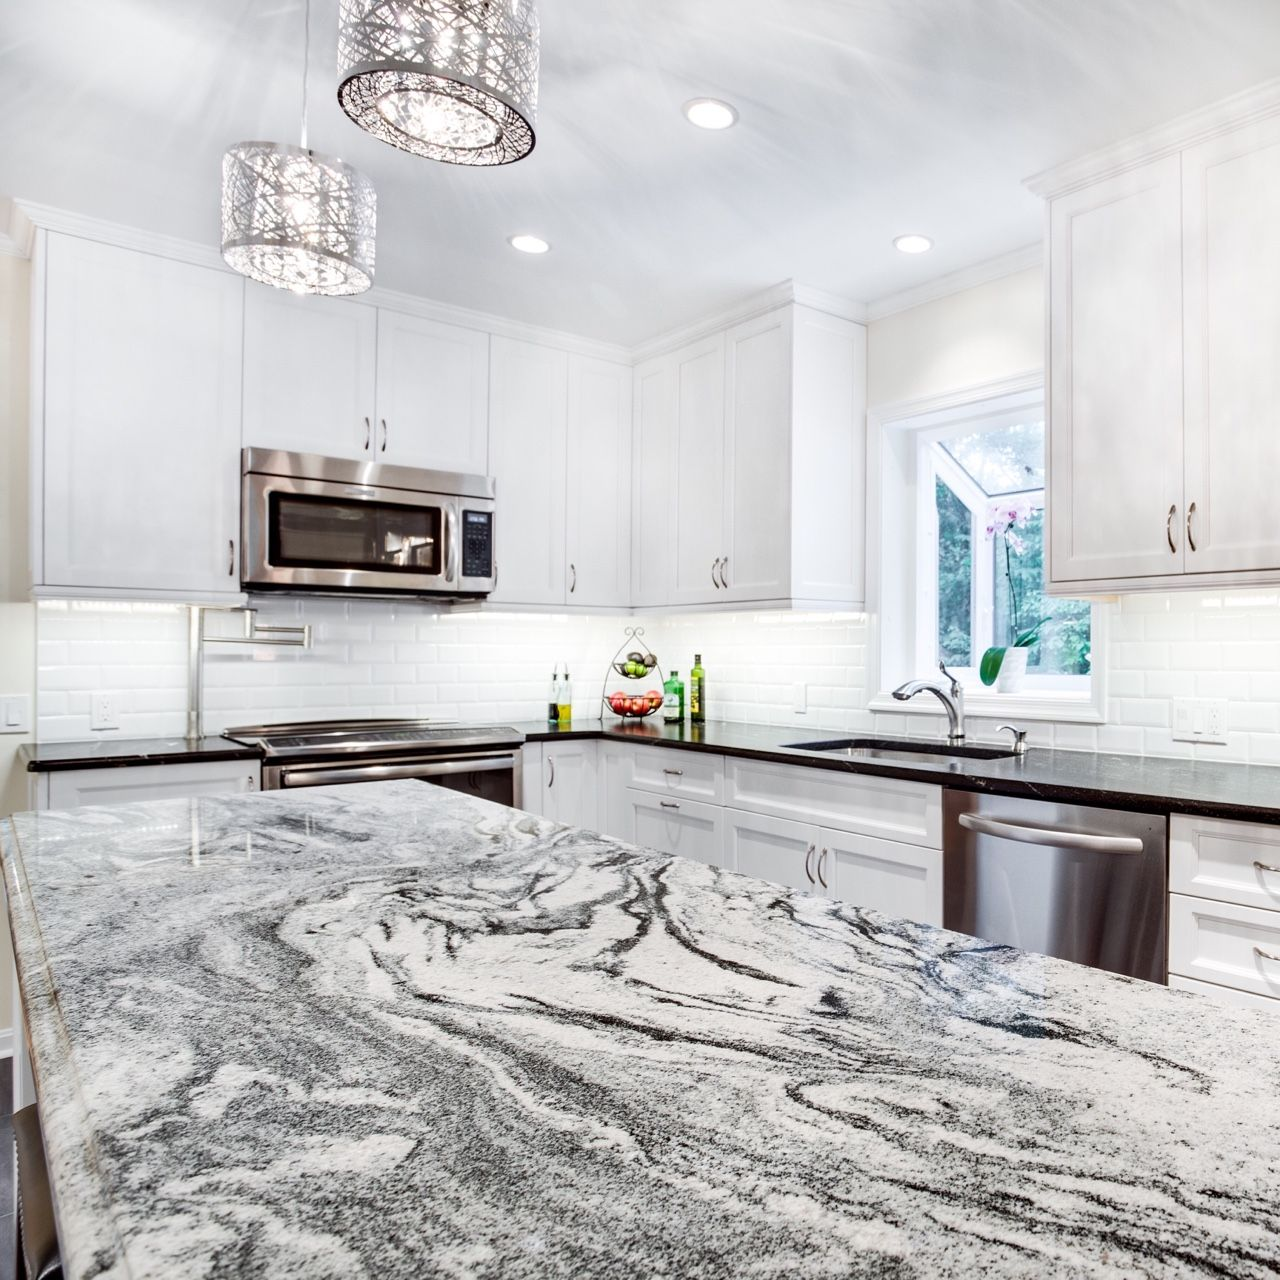 Granite countertops most popular favorite - This Silver Cloud Granite Kitchen Island Countertop Makes Quite An Impact In The Kitchen And As